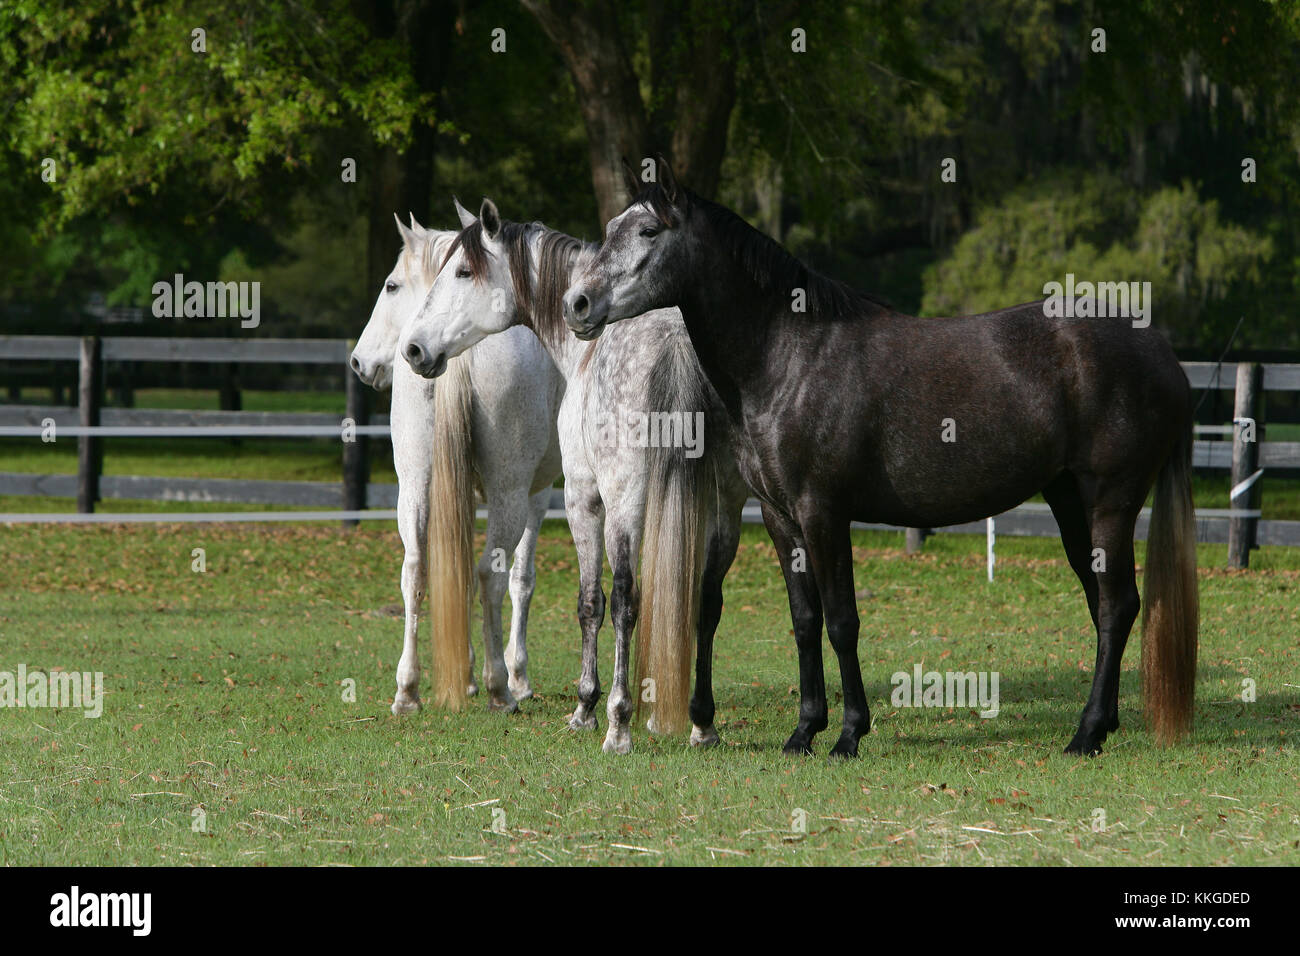 Group Of Lusitano Horses Standing Together - Stock Image